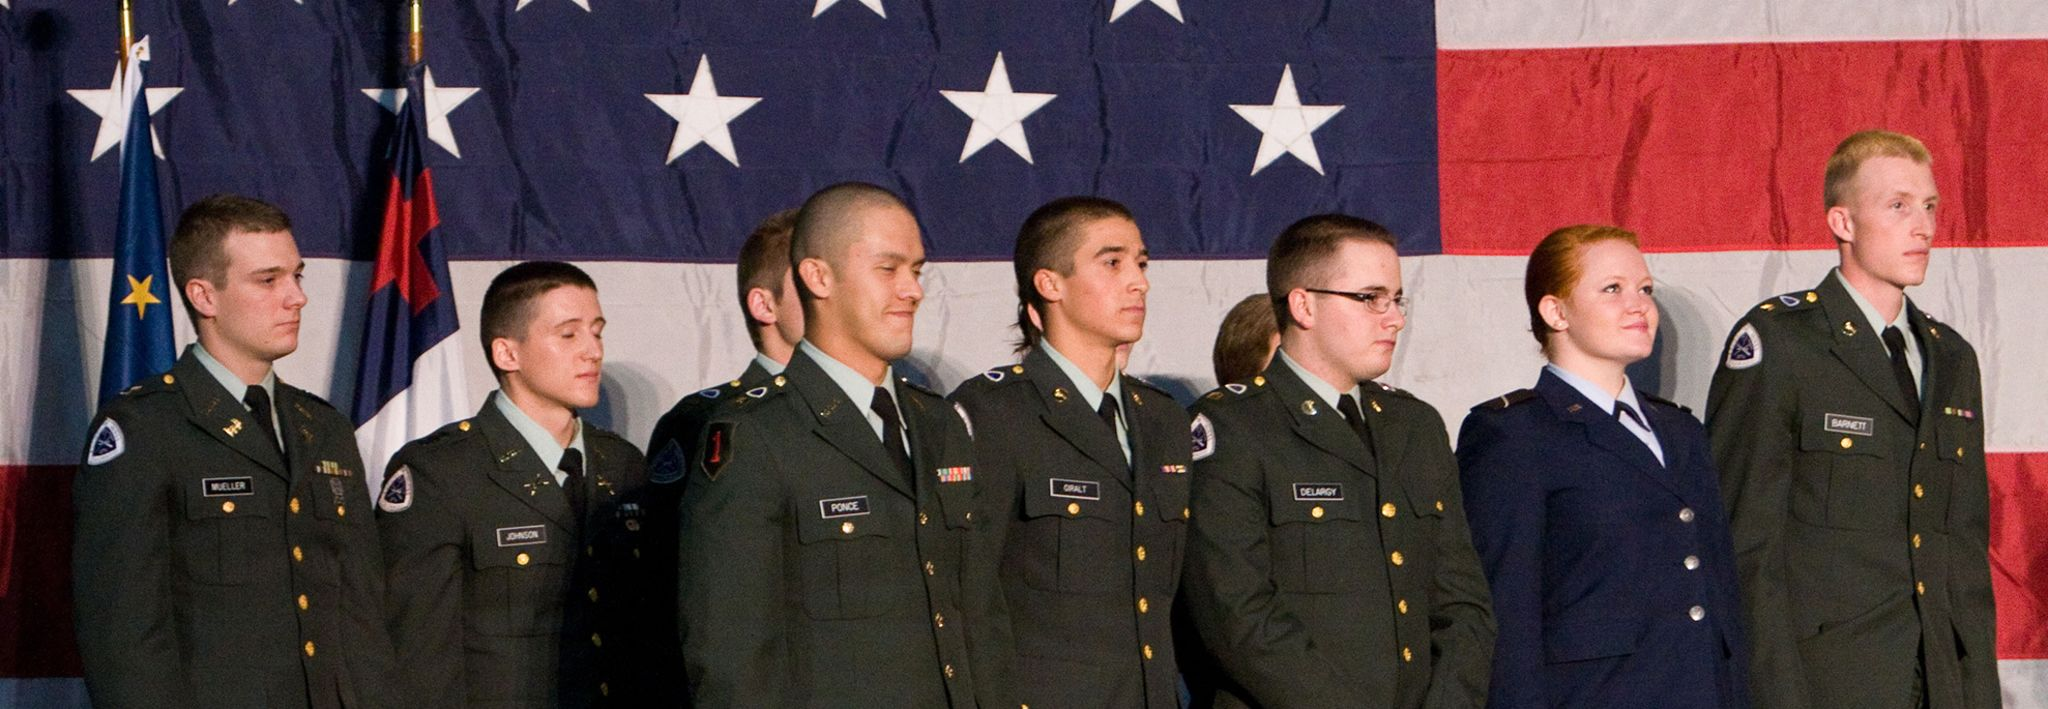 Colorado Christian University students involved in ROTC pose for a photo in front of an American flag.